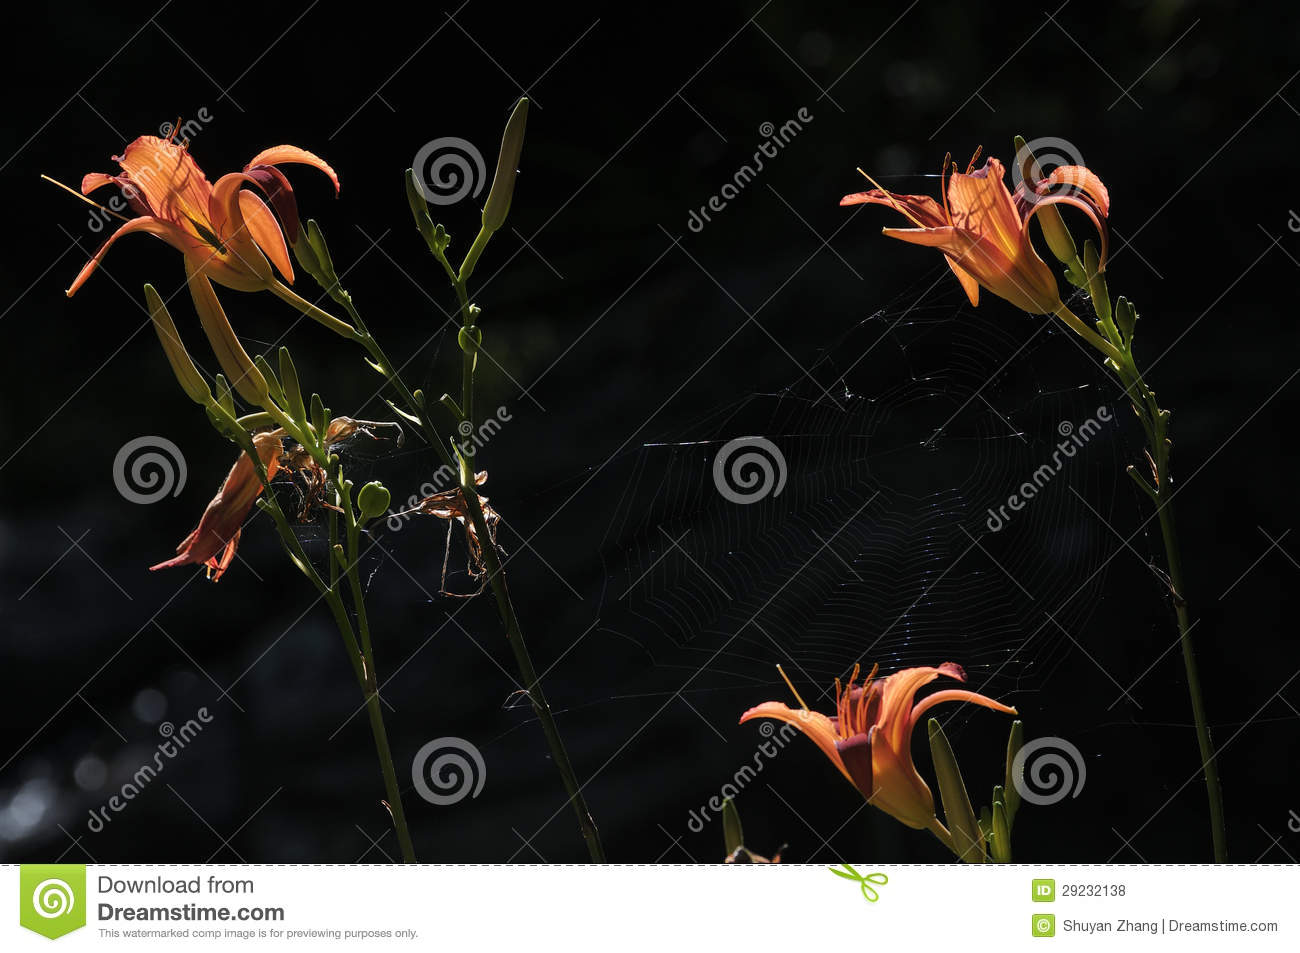 Download Hemerocallis bonito foto de stock. Imagem de aranha, bonito - 29232138